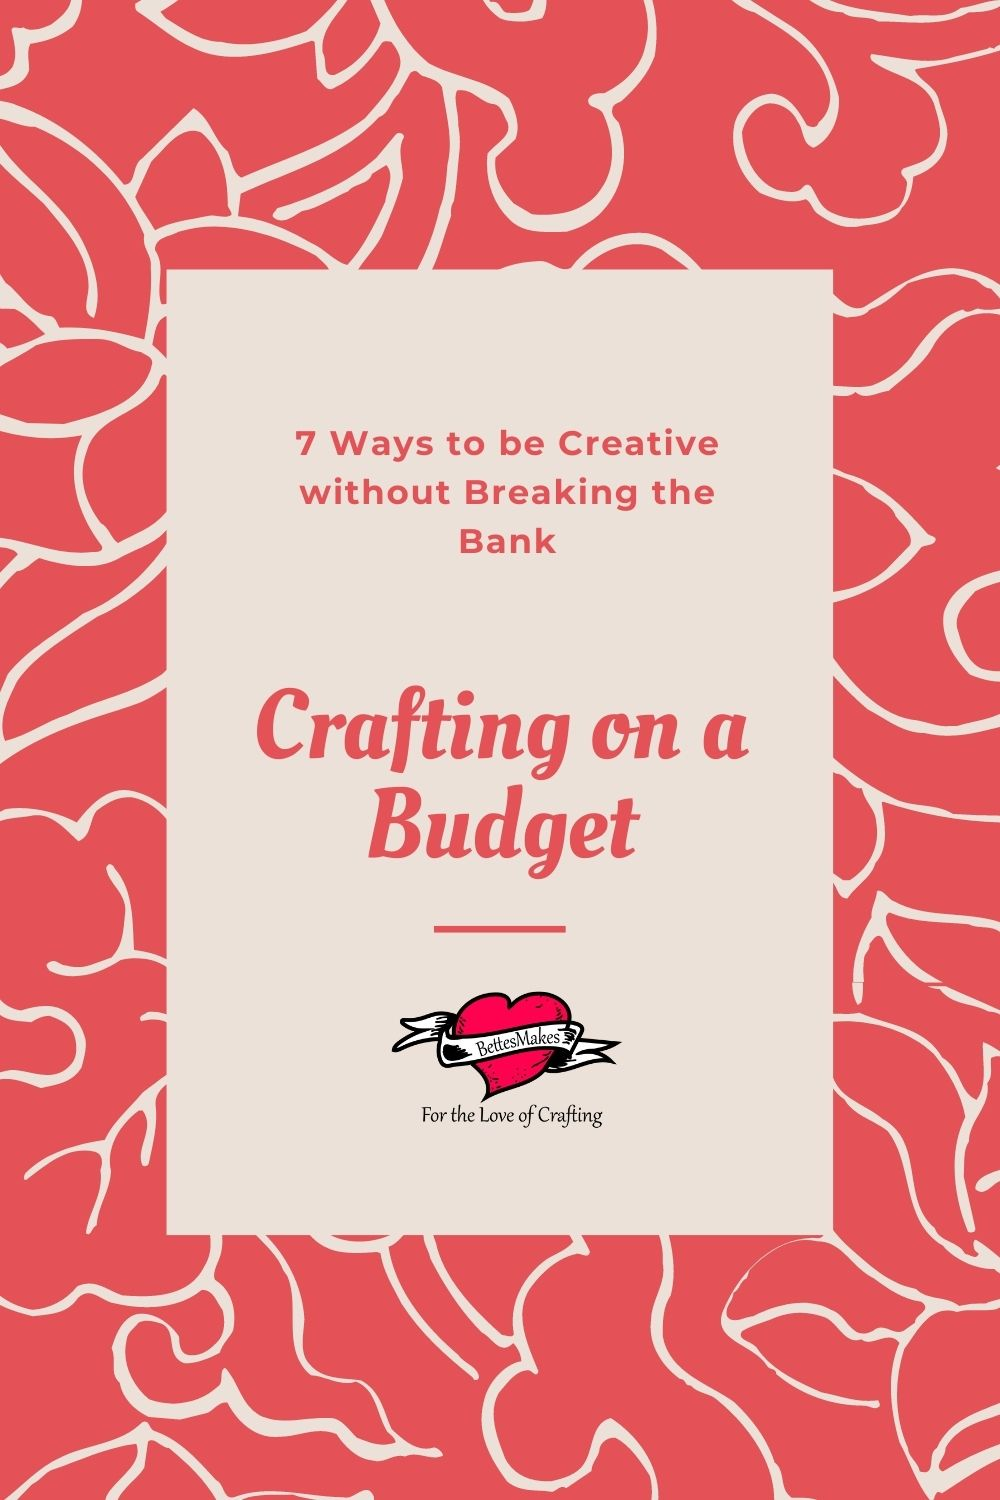 7 Easy Ways to Craft on a Budget